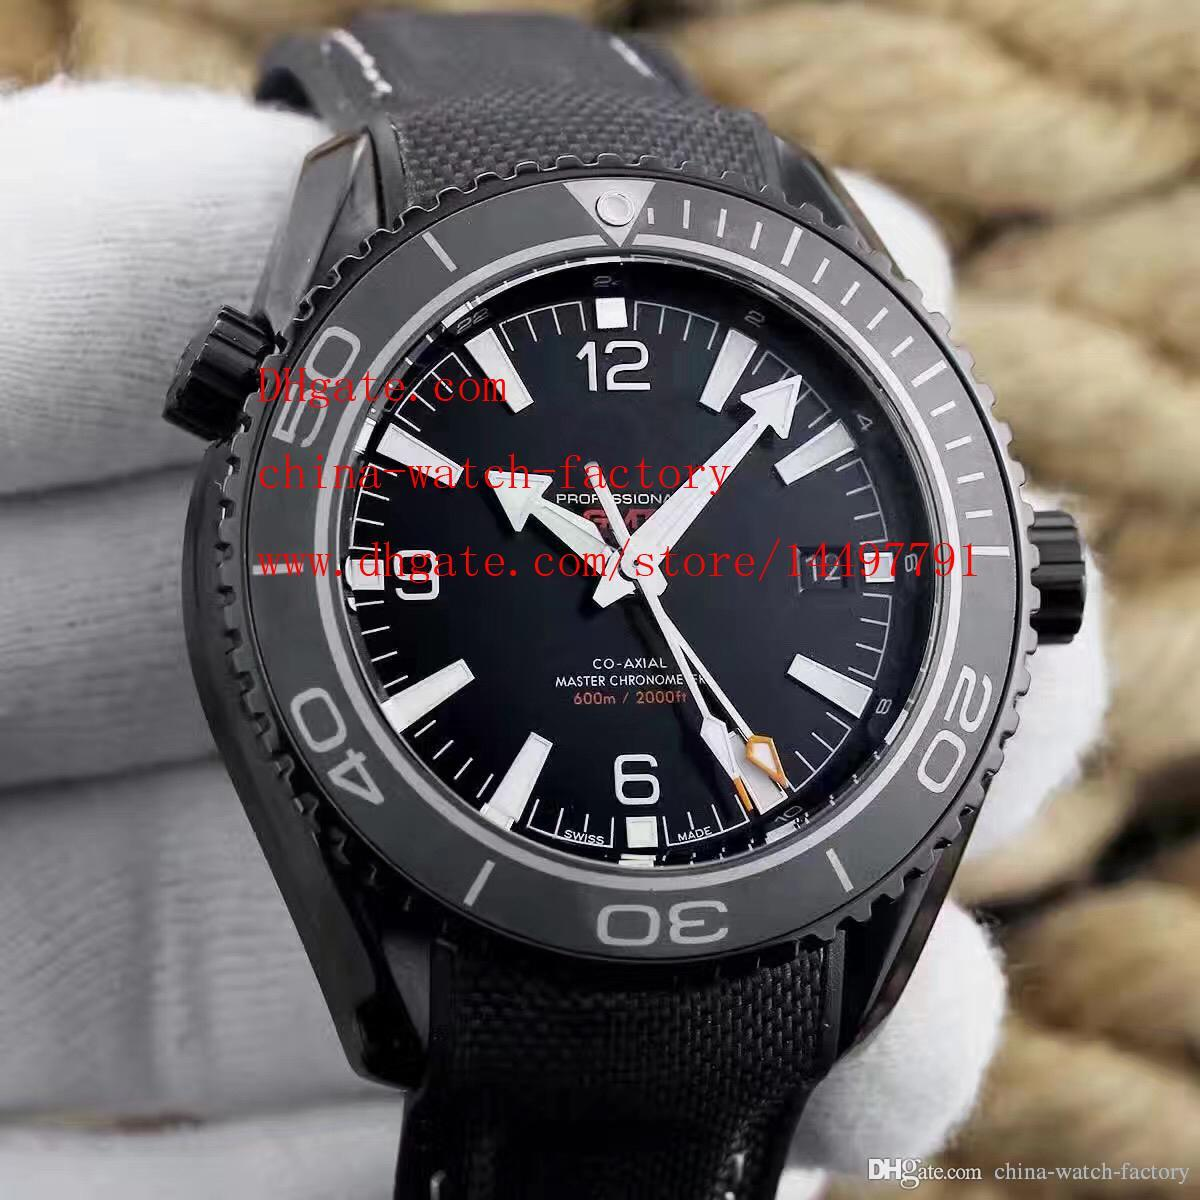 axial watches master ocean co omega chronometer planet availability